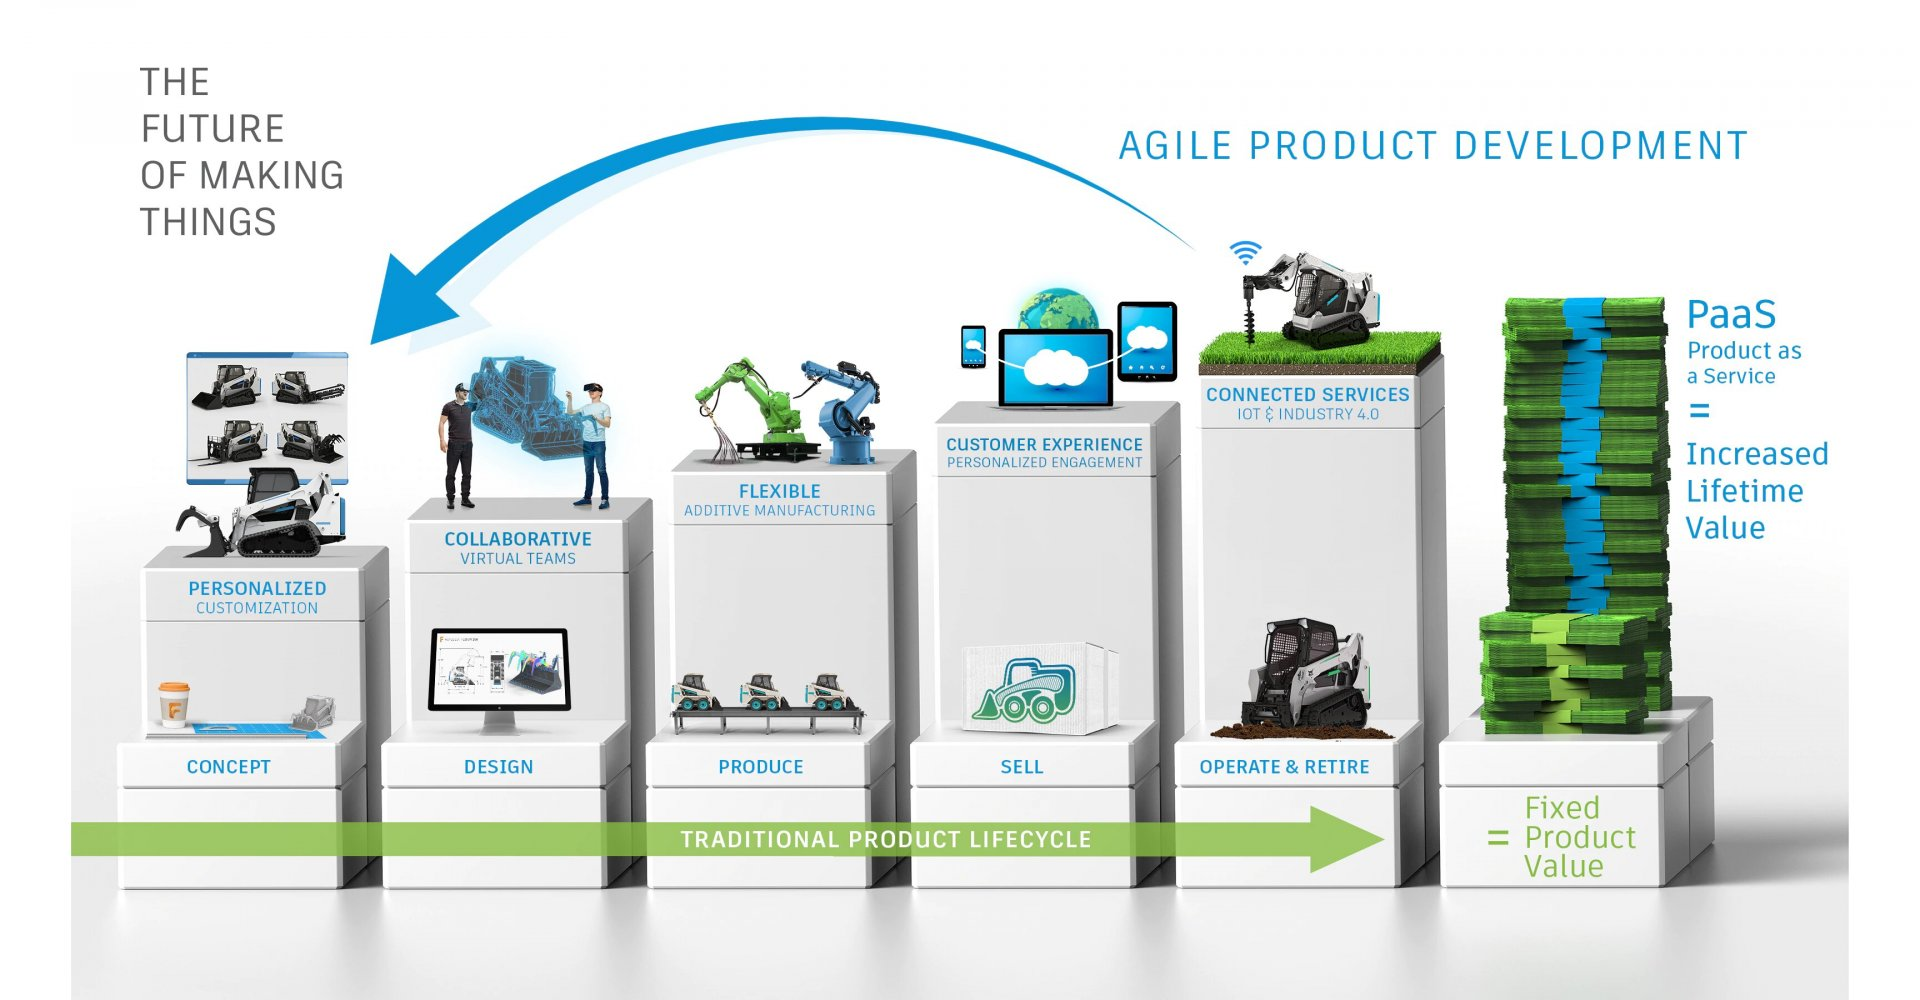 Digital strategy and agile product development infographic from Autodesk Manufacturing